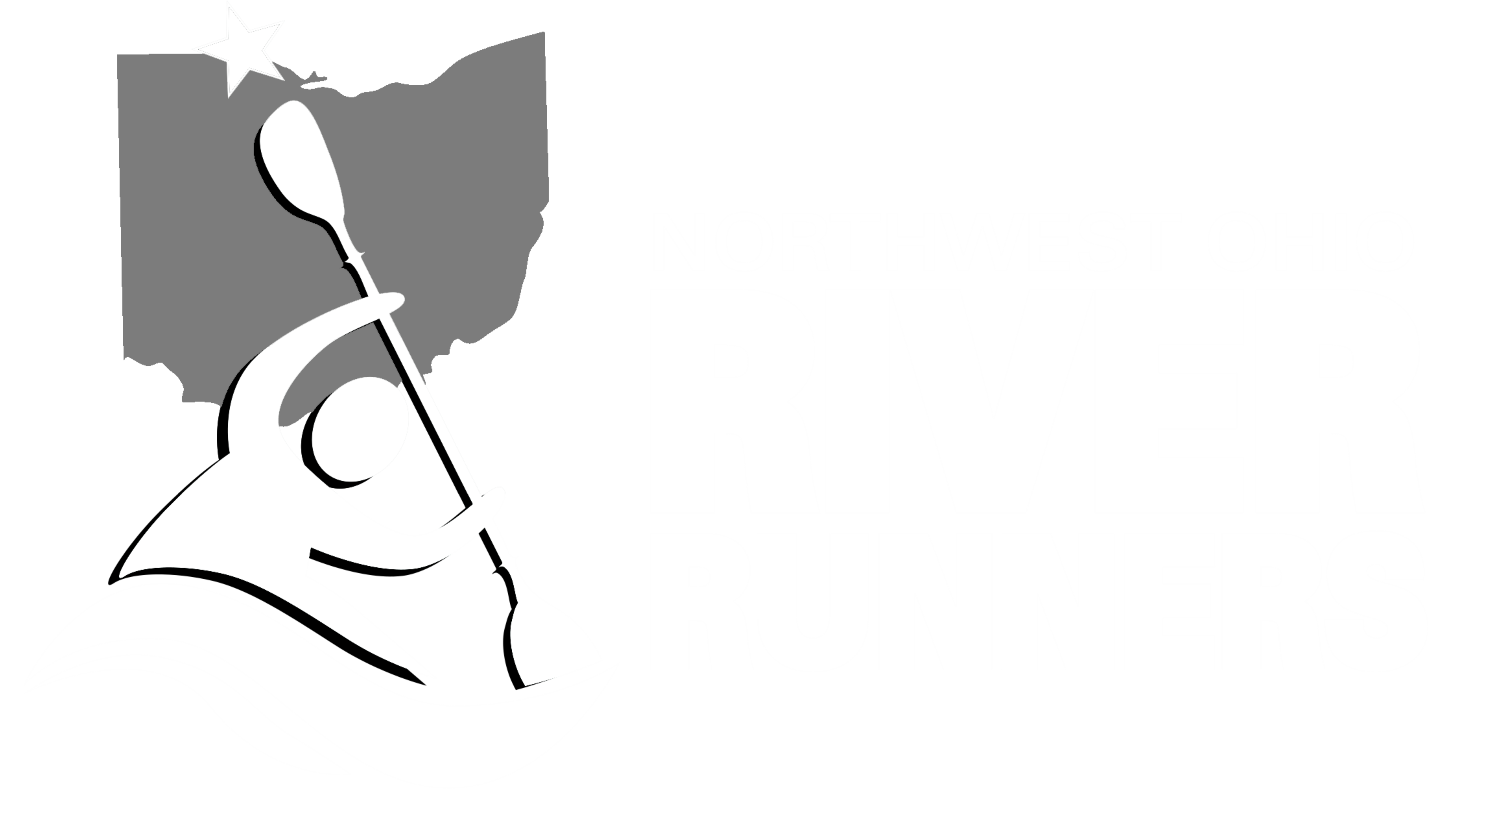 Northwest Ohio River Runners